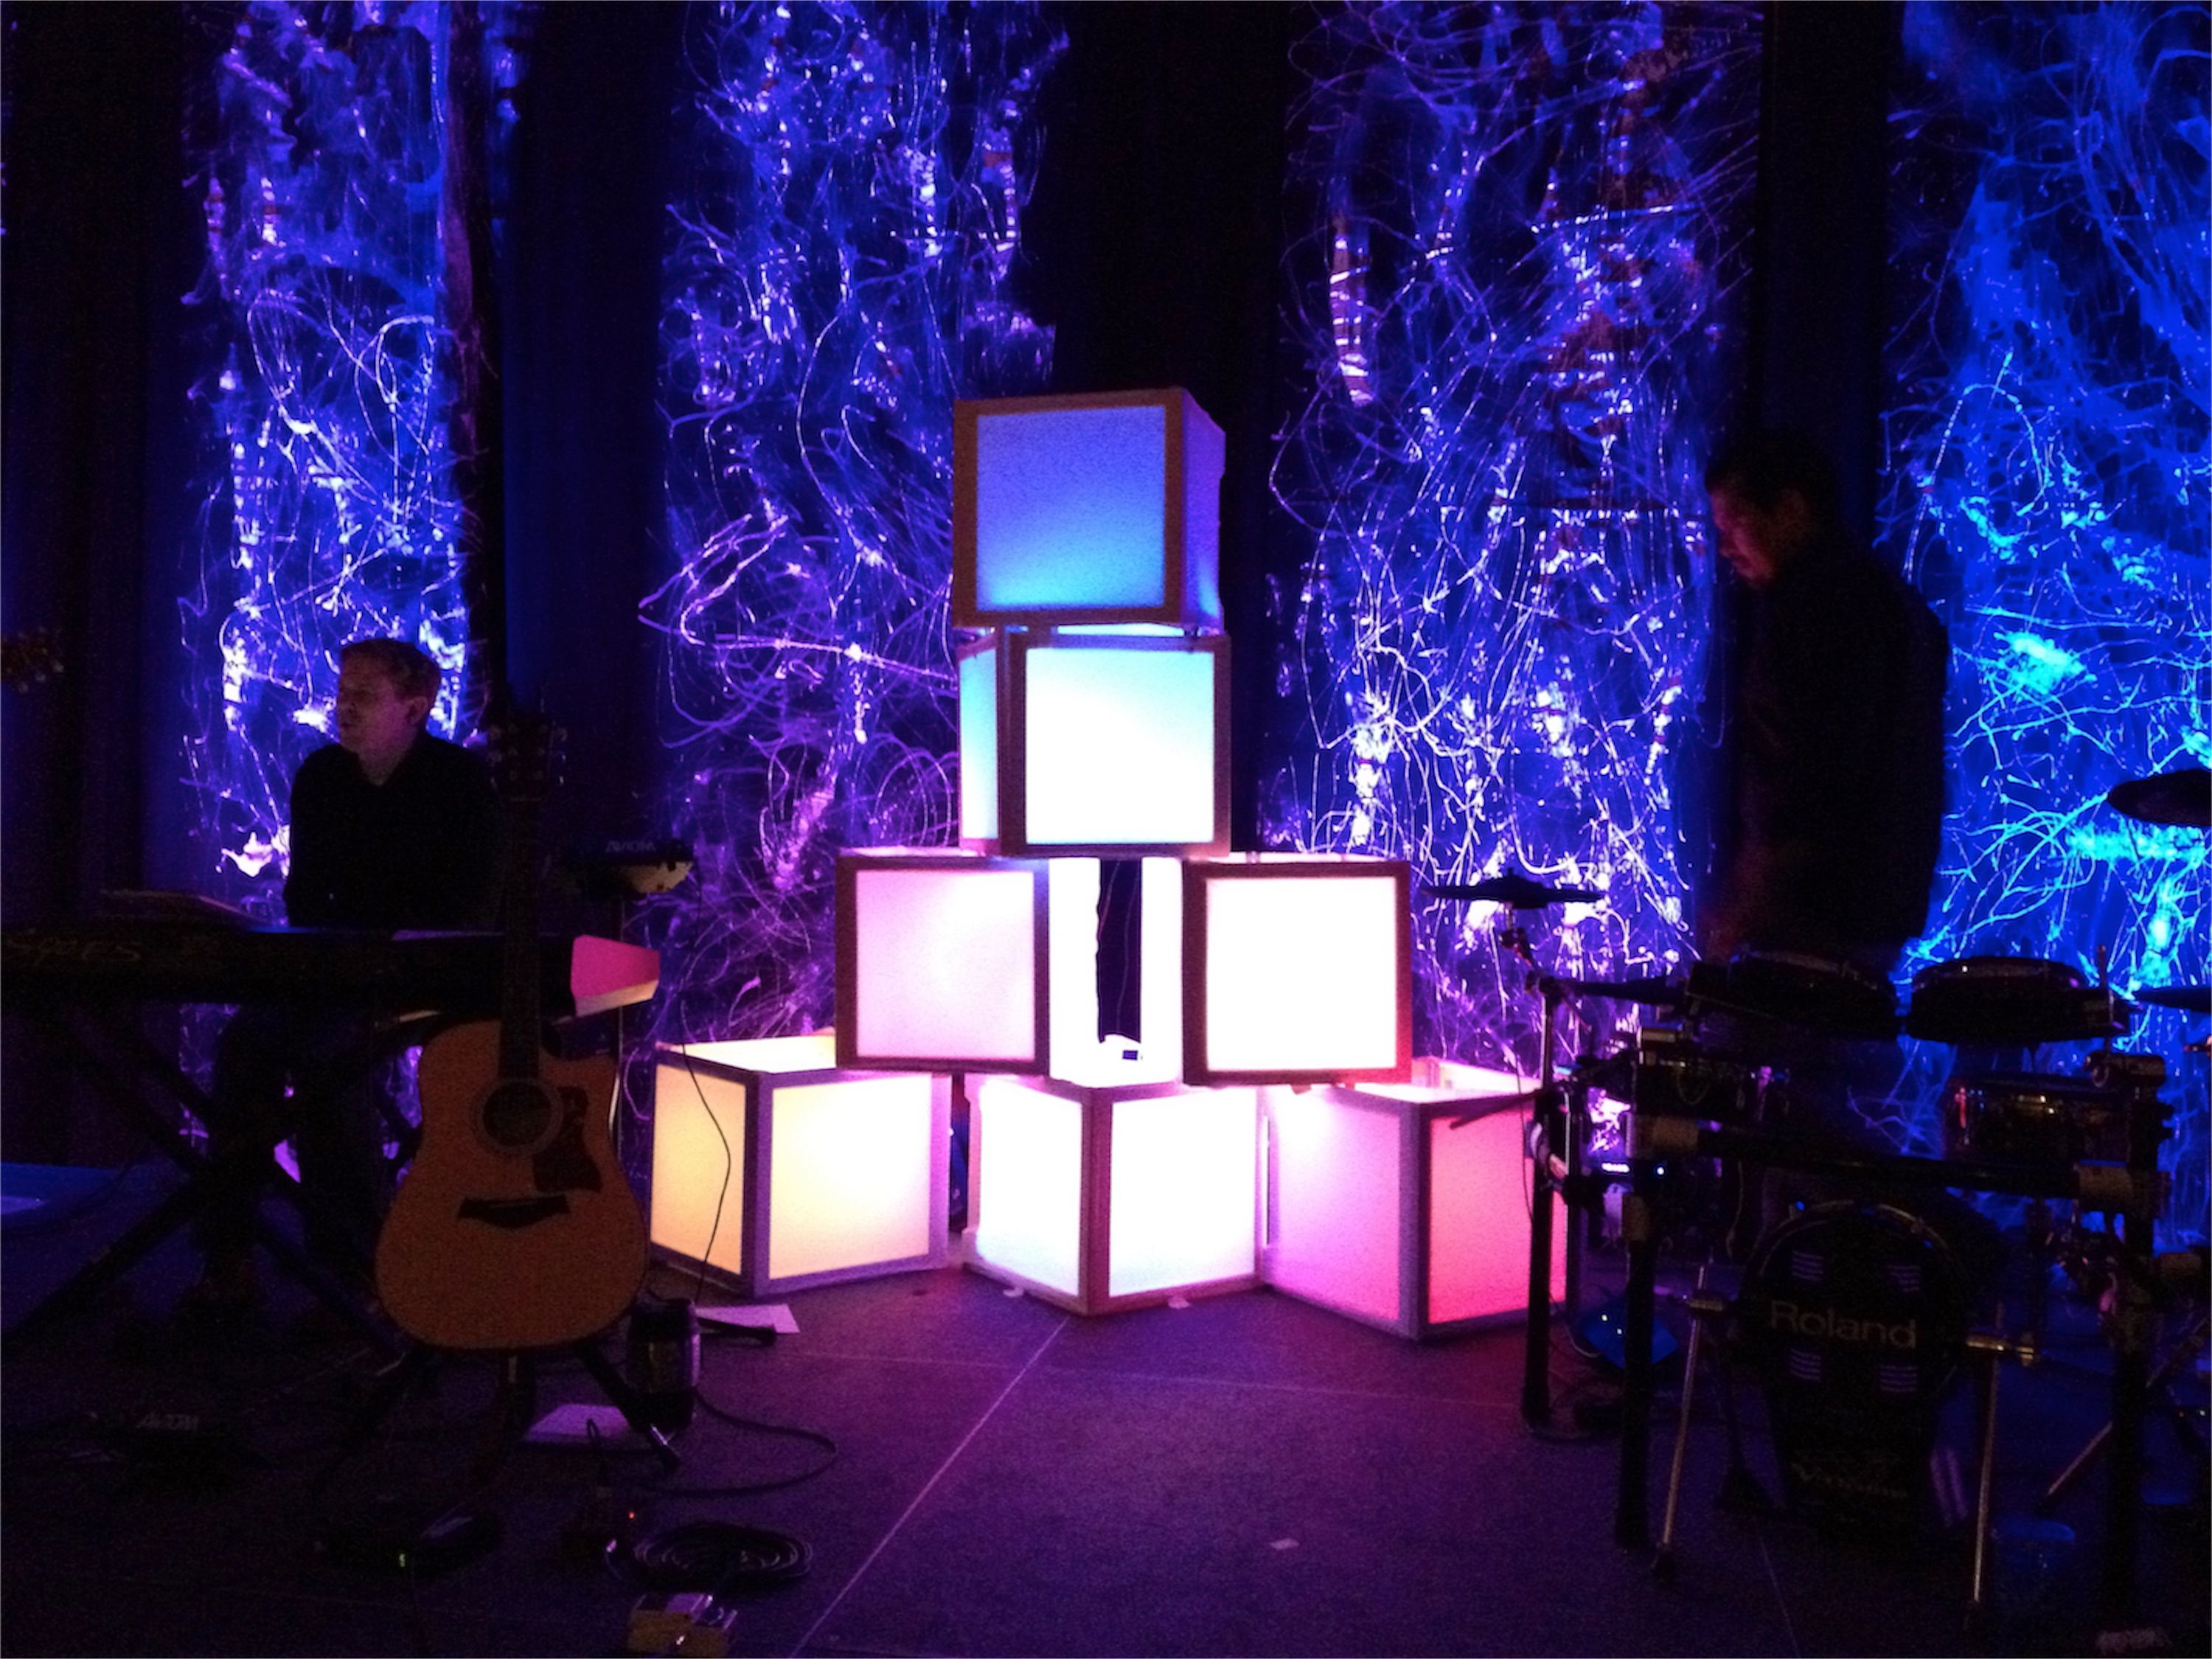 cube light stage design for cap kids stage designput orange or turqoise lighting in the cubes - Concert Stage Design Ideas